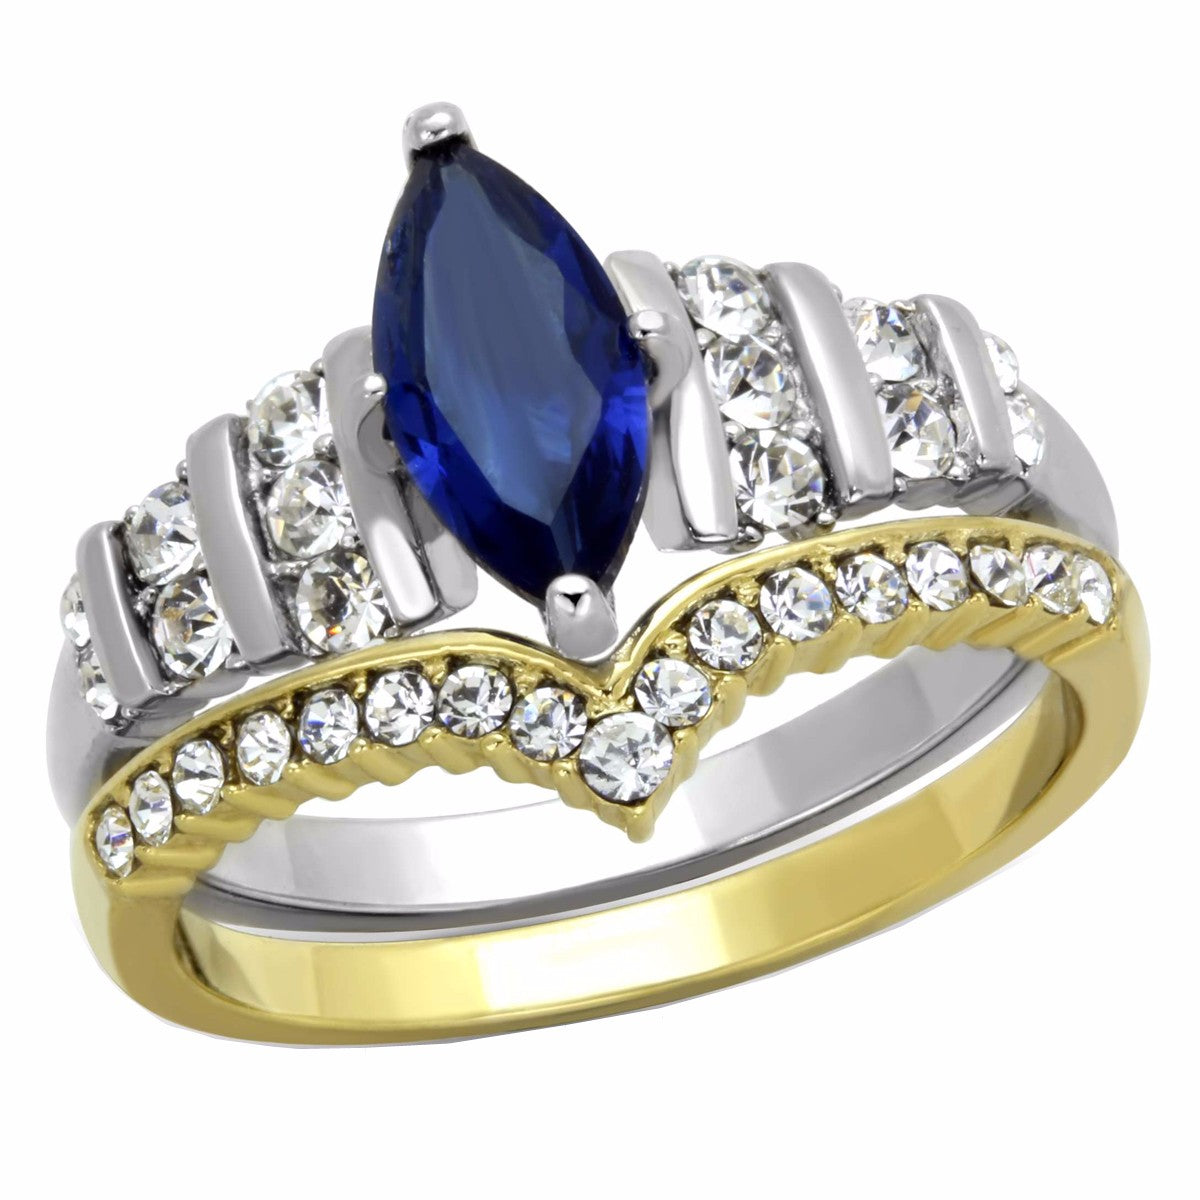 Womens Marquise Cut Sapphire CZ Two Tone Gold Stainless Steel Wedding Ring Set - LA NY Jewelry